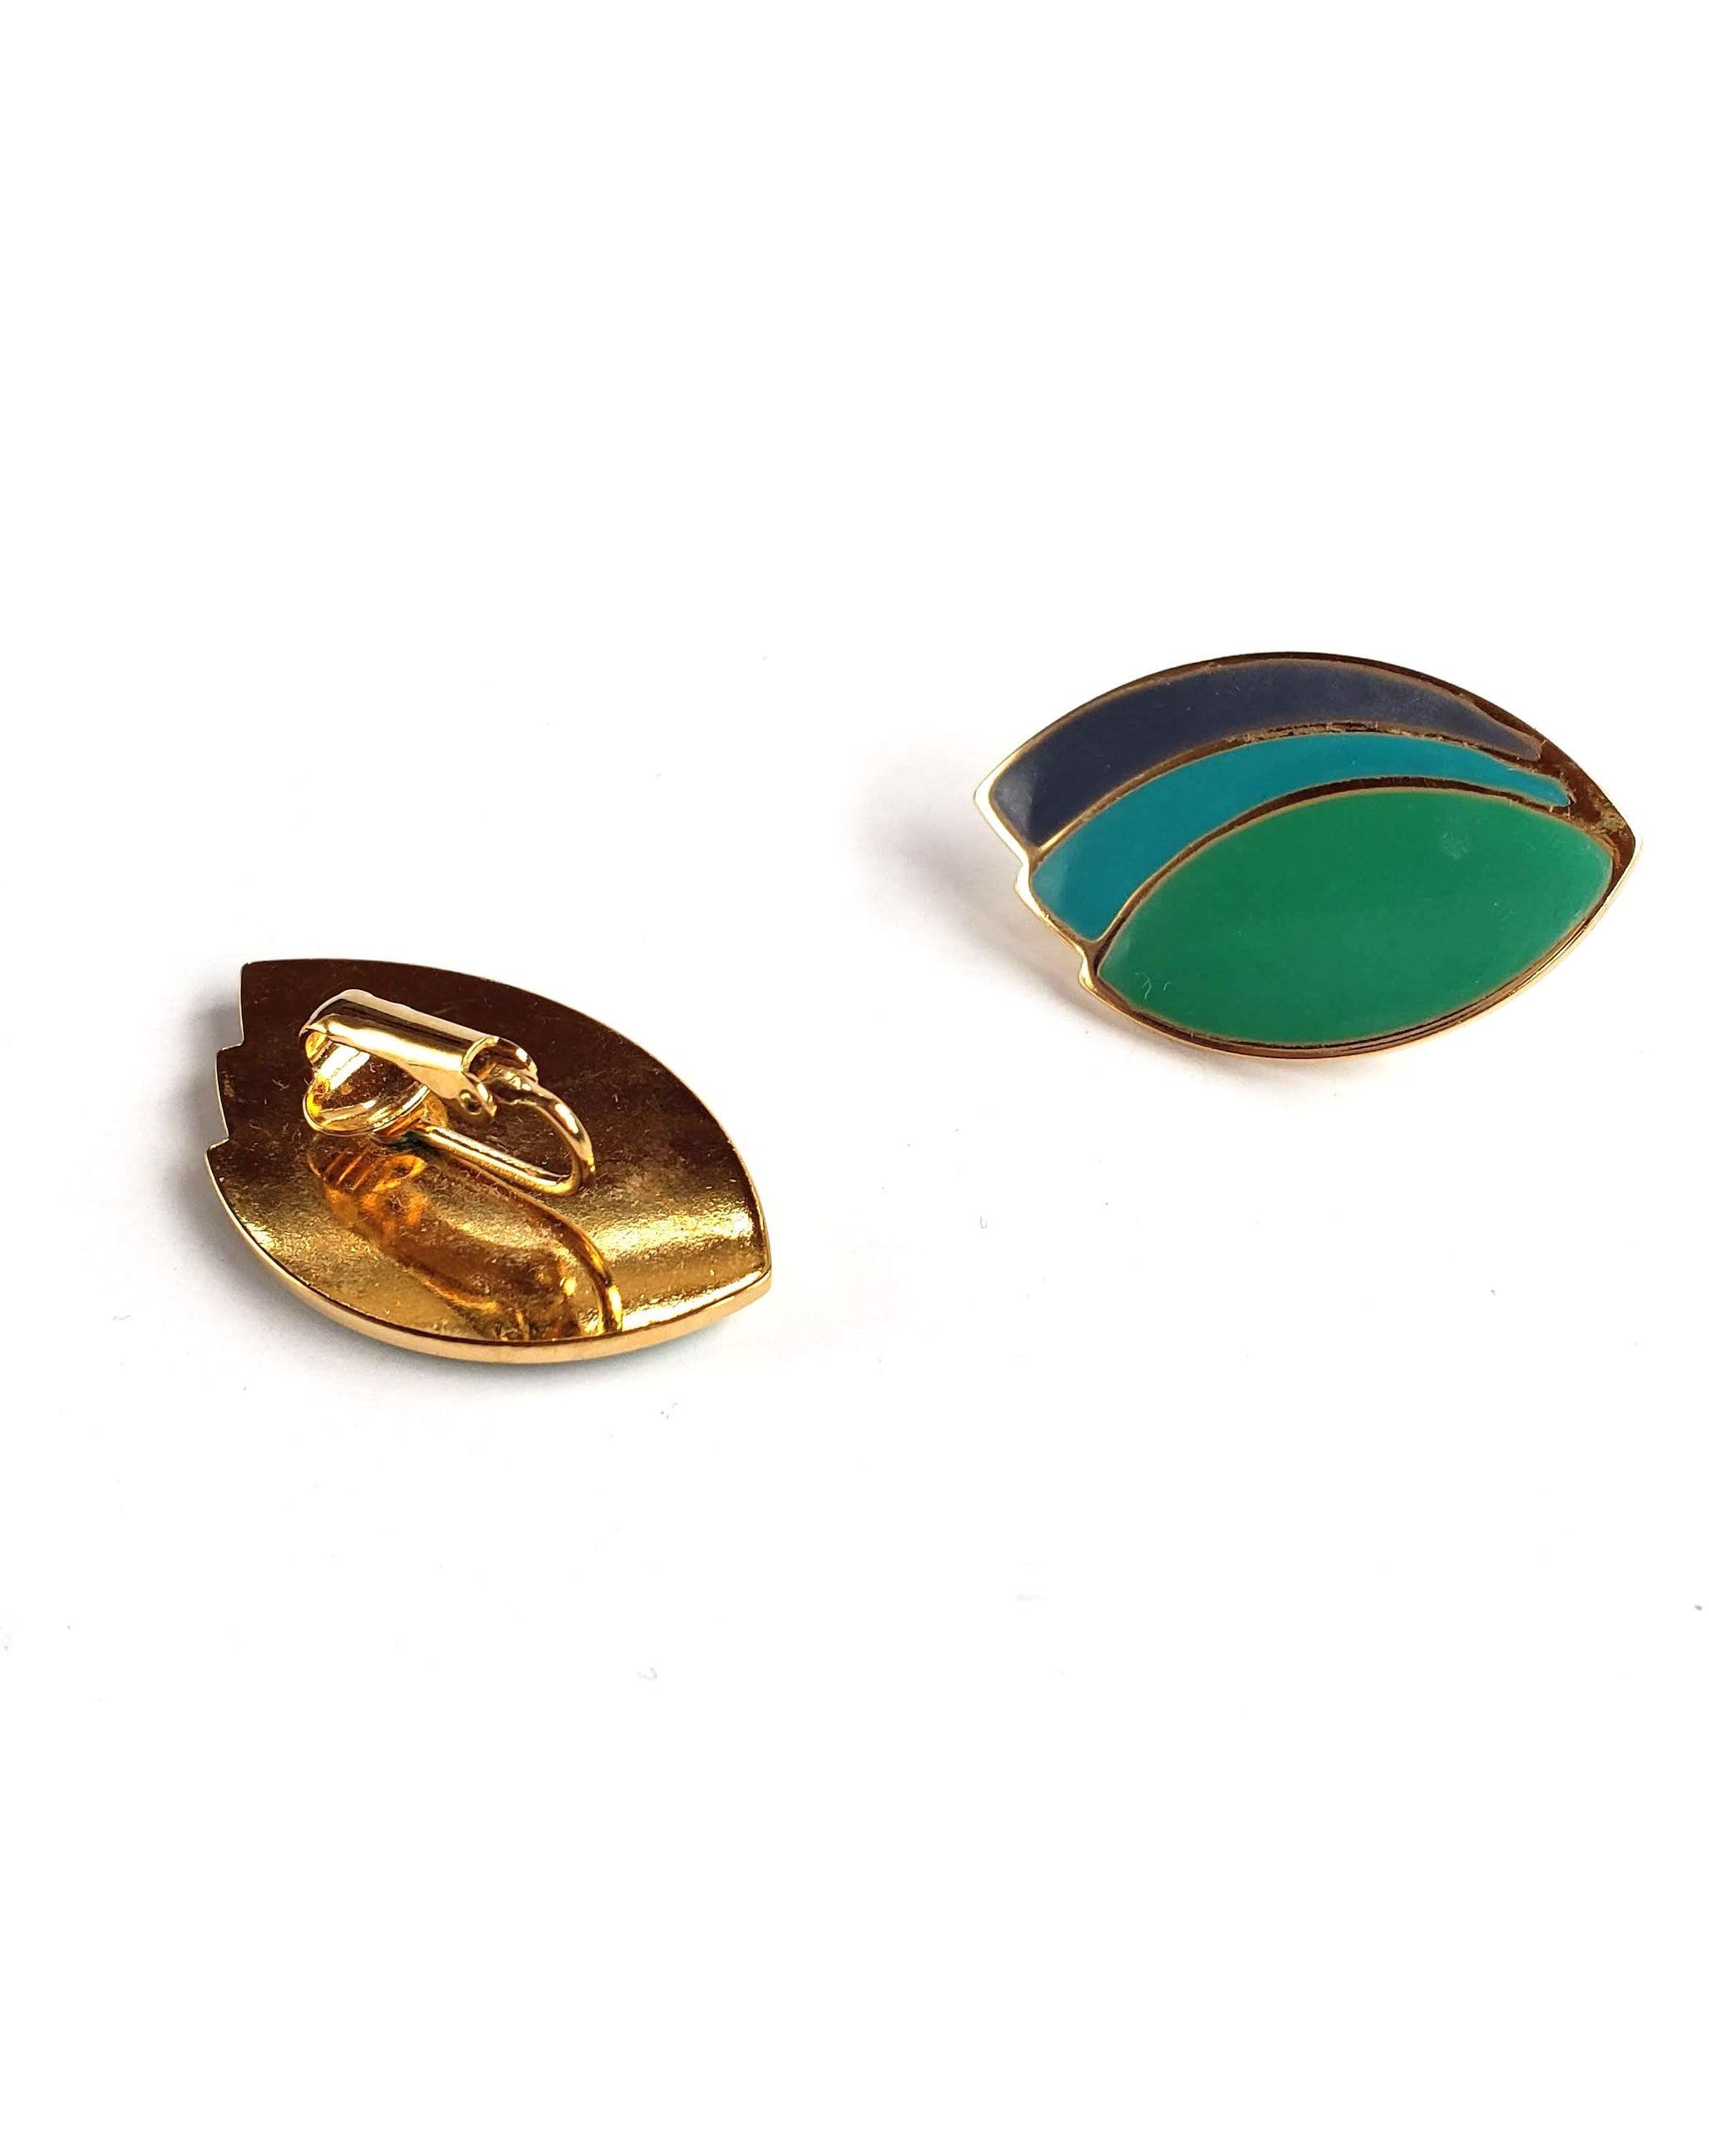 80s Green, Teal & Periwinkle Enamel Clip-on Earrings